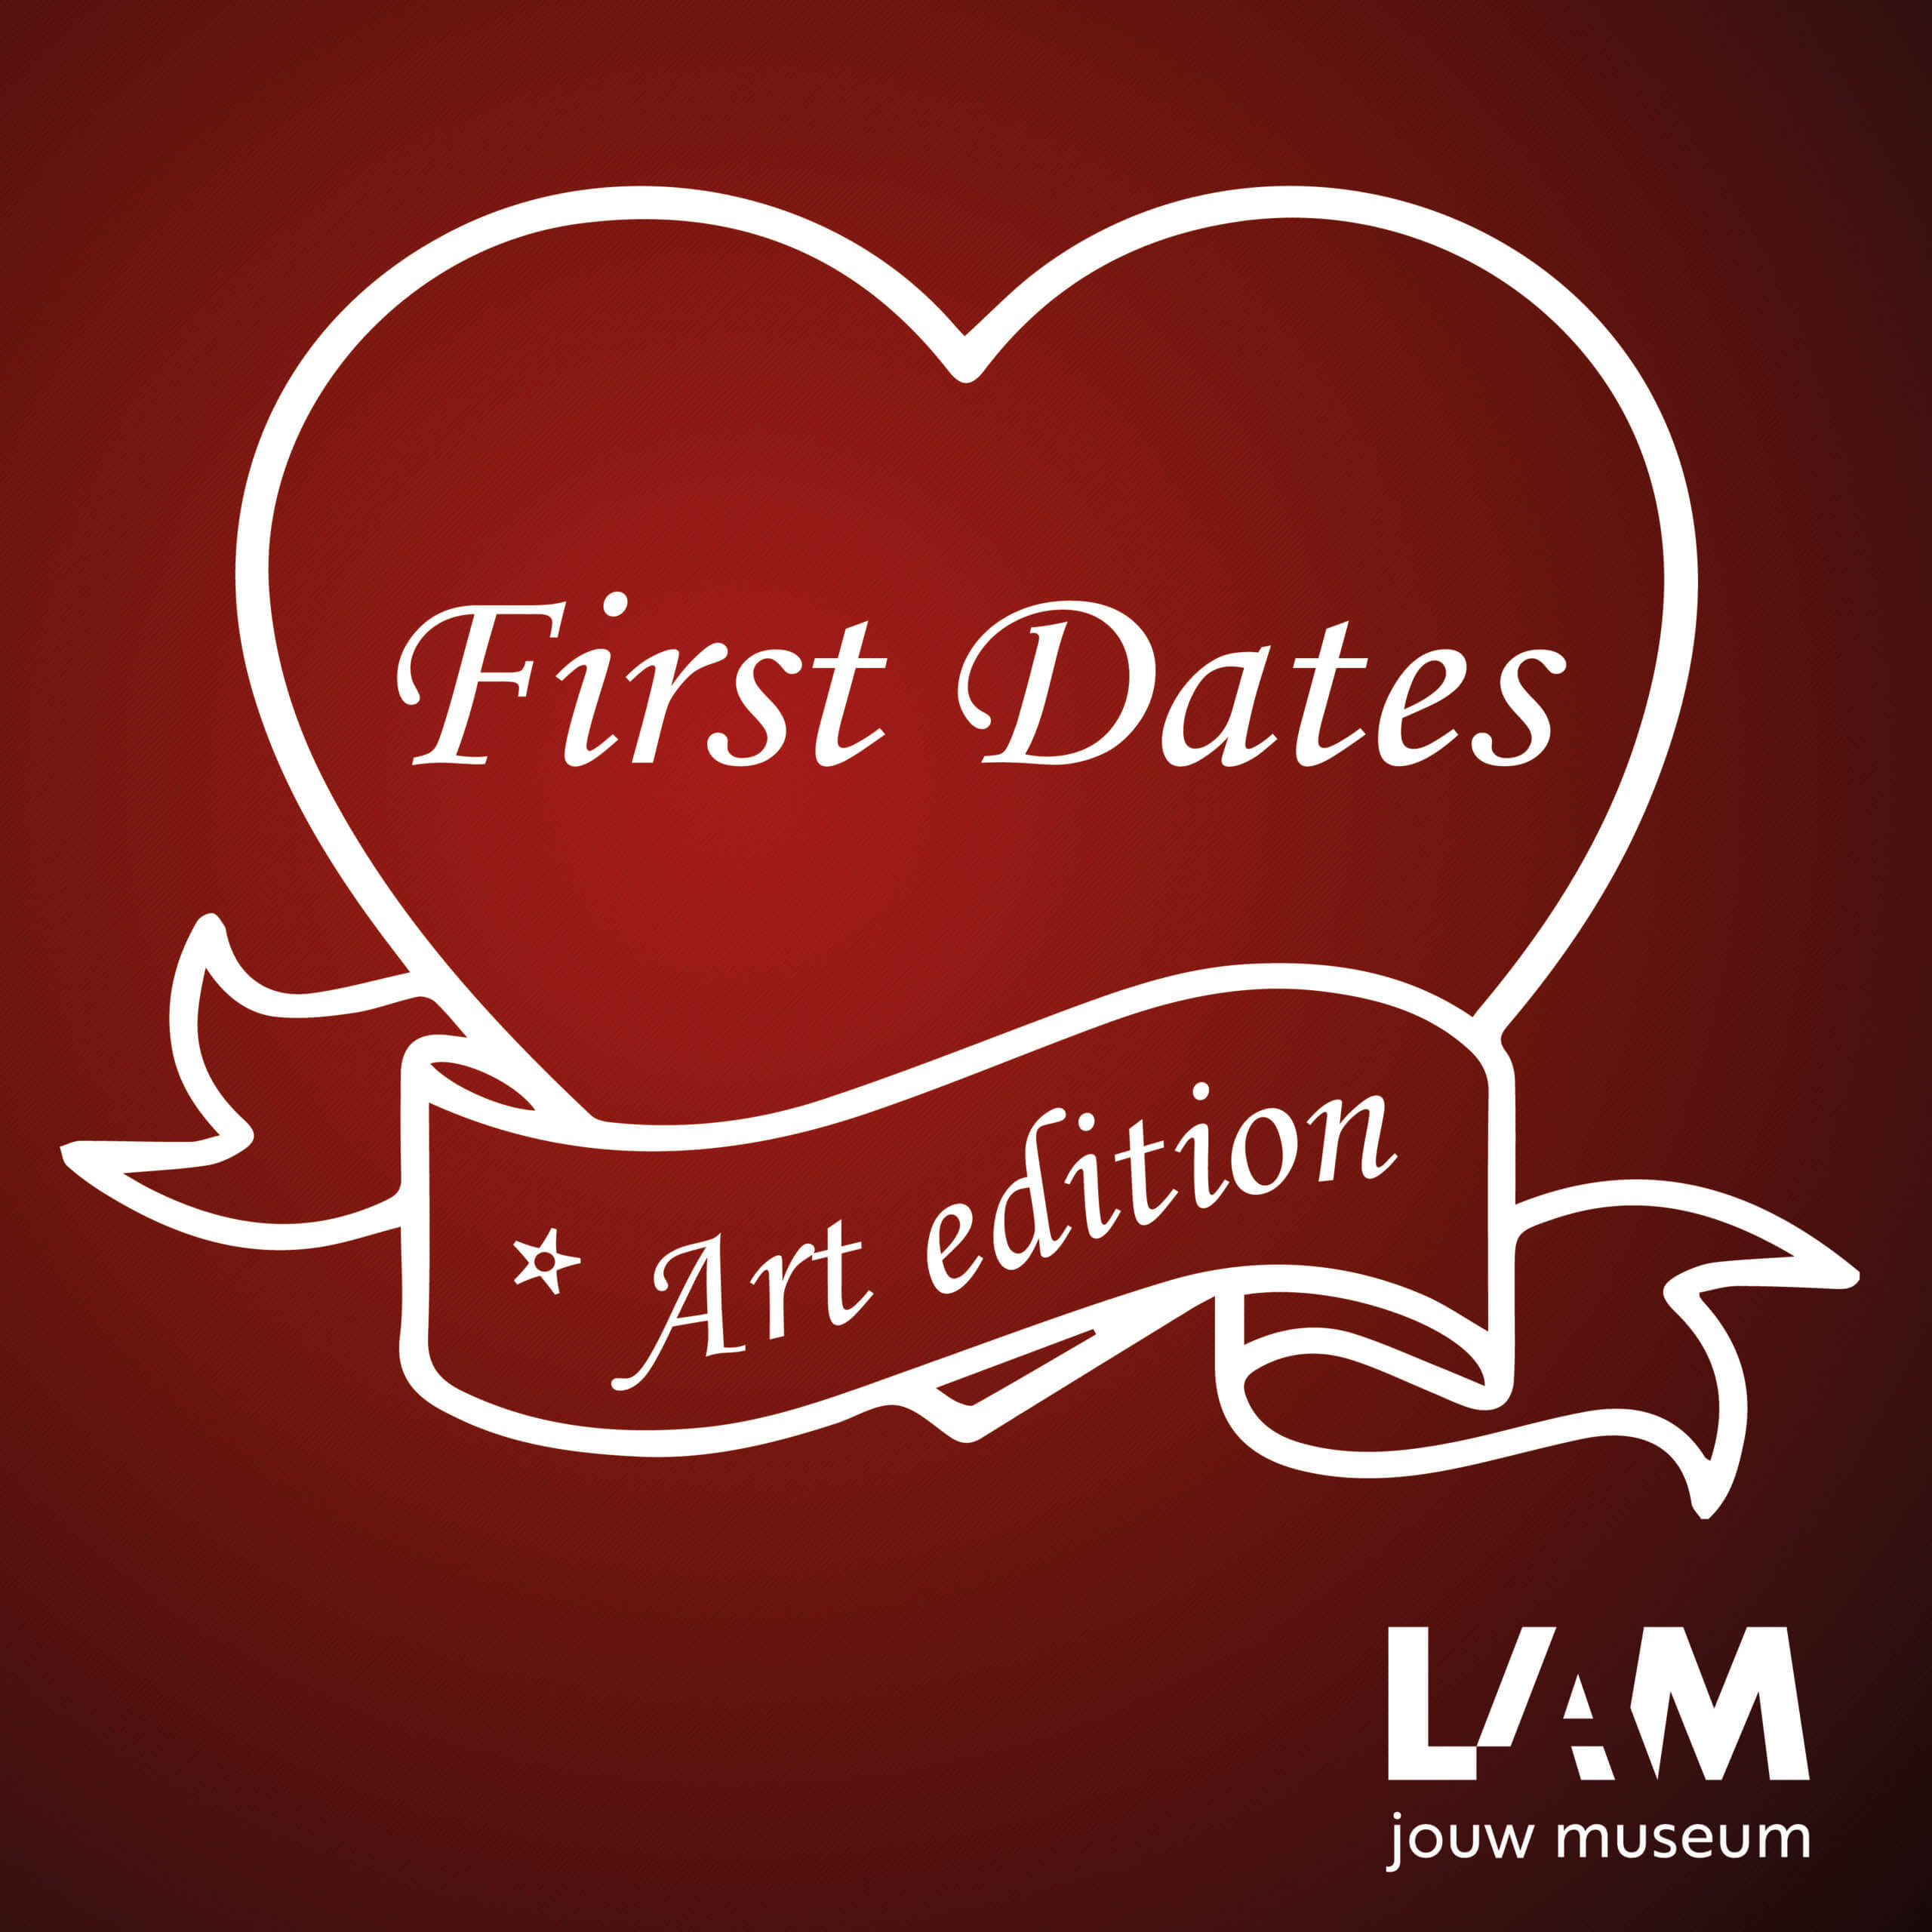 First Dates at the LAM museum